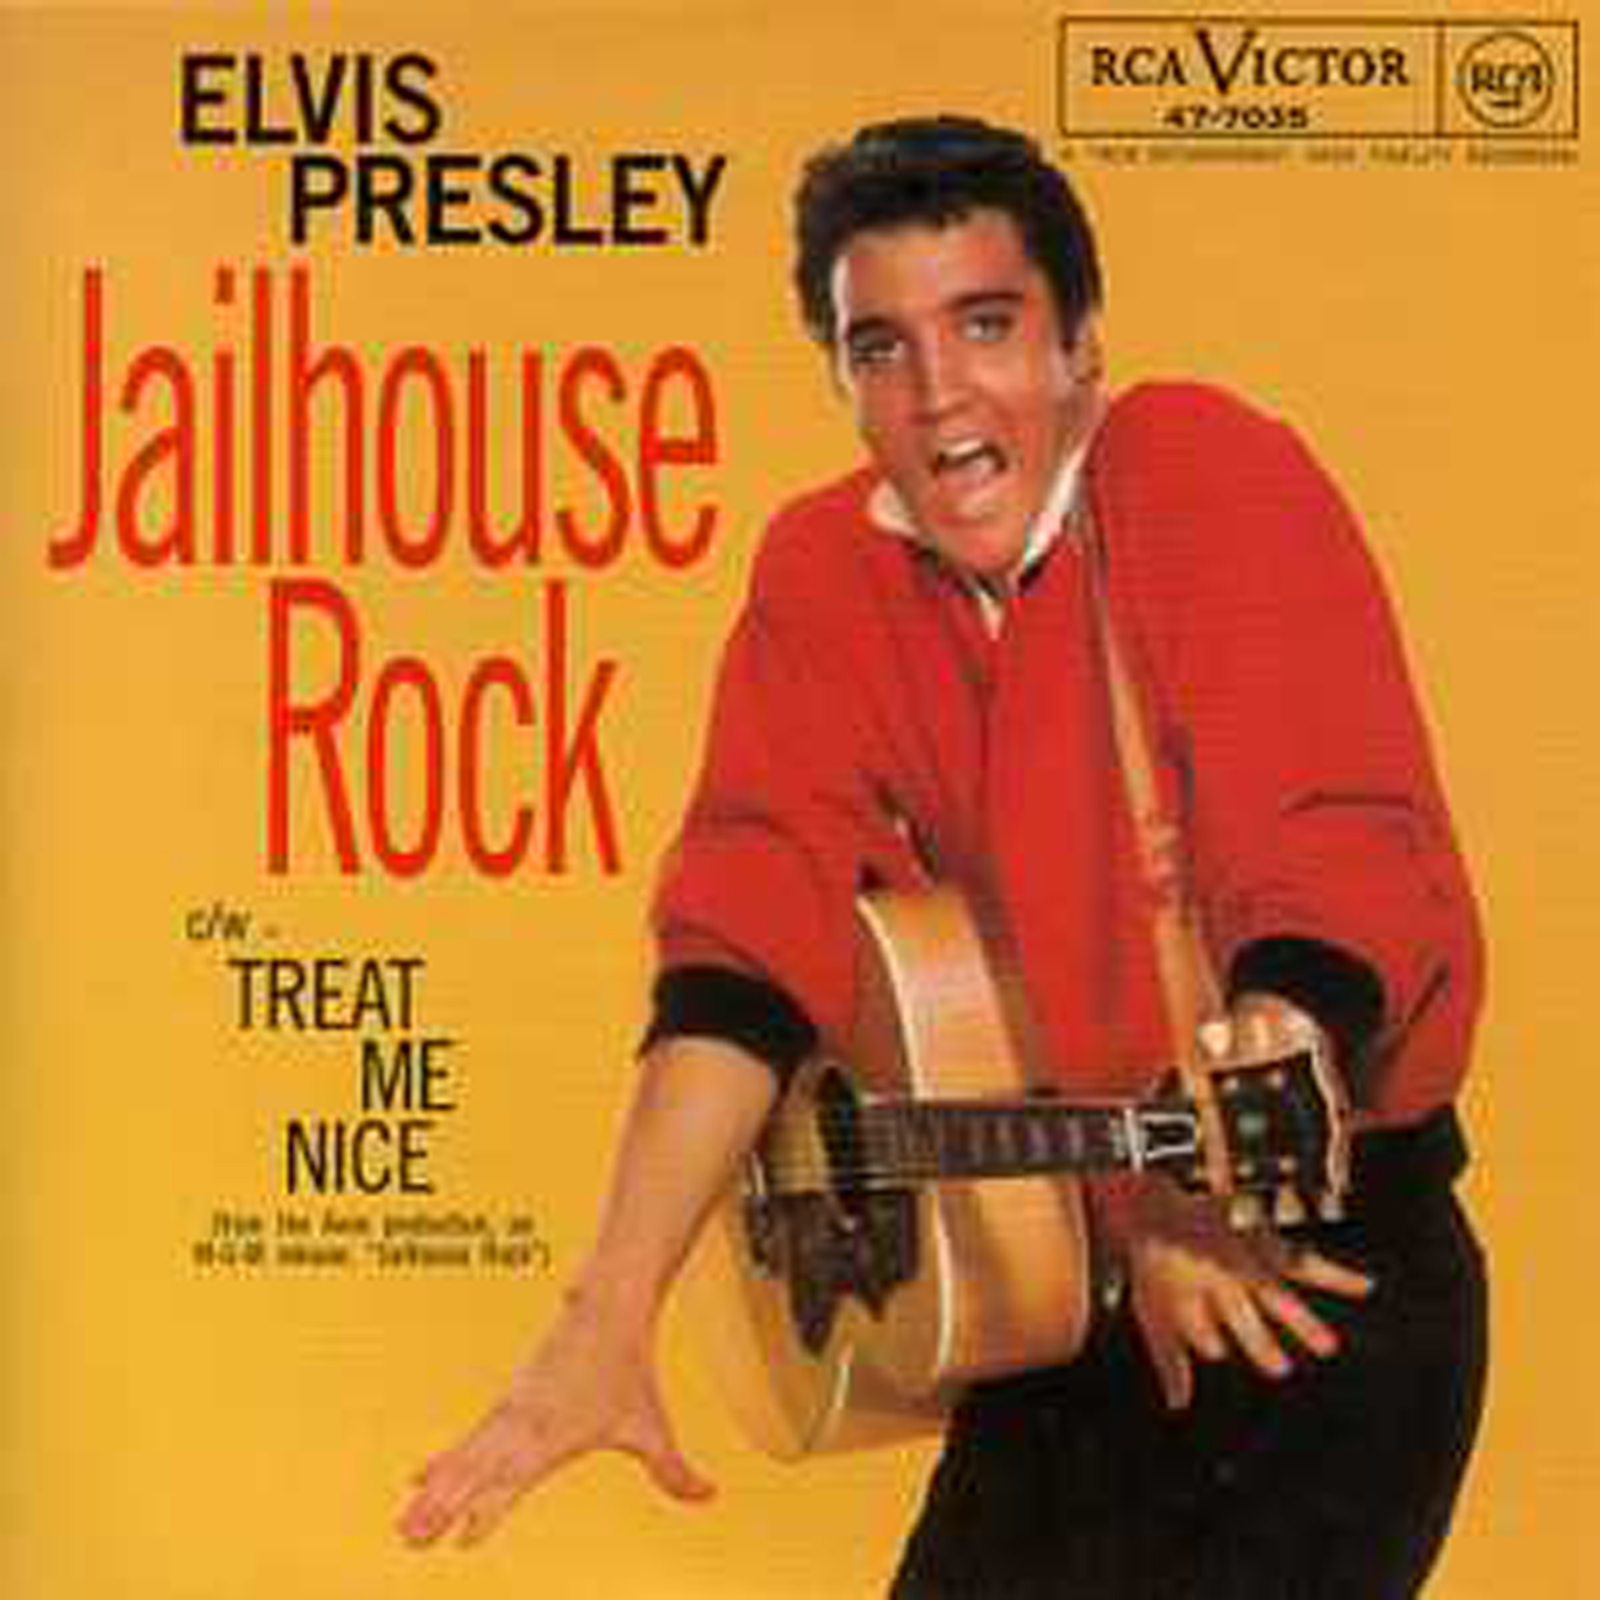 Elvis PRESLEY - Soundtrack : Jailhouse Rock - Jailhouse Rock 3-track Card Sleeve